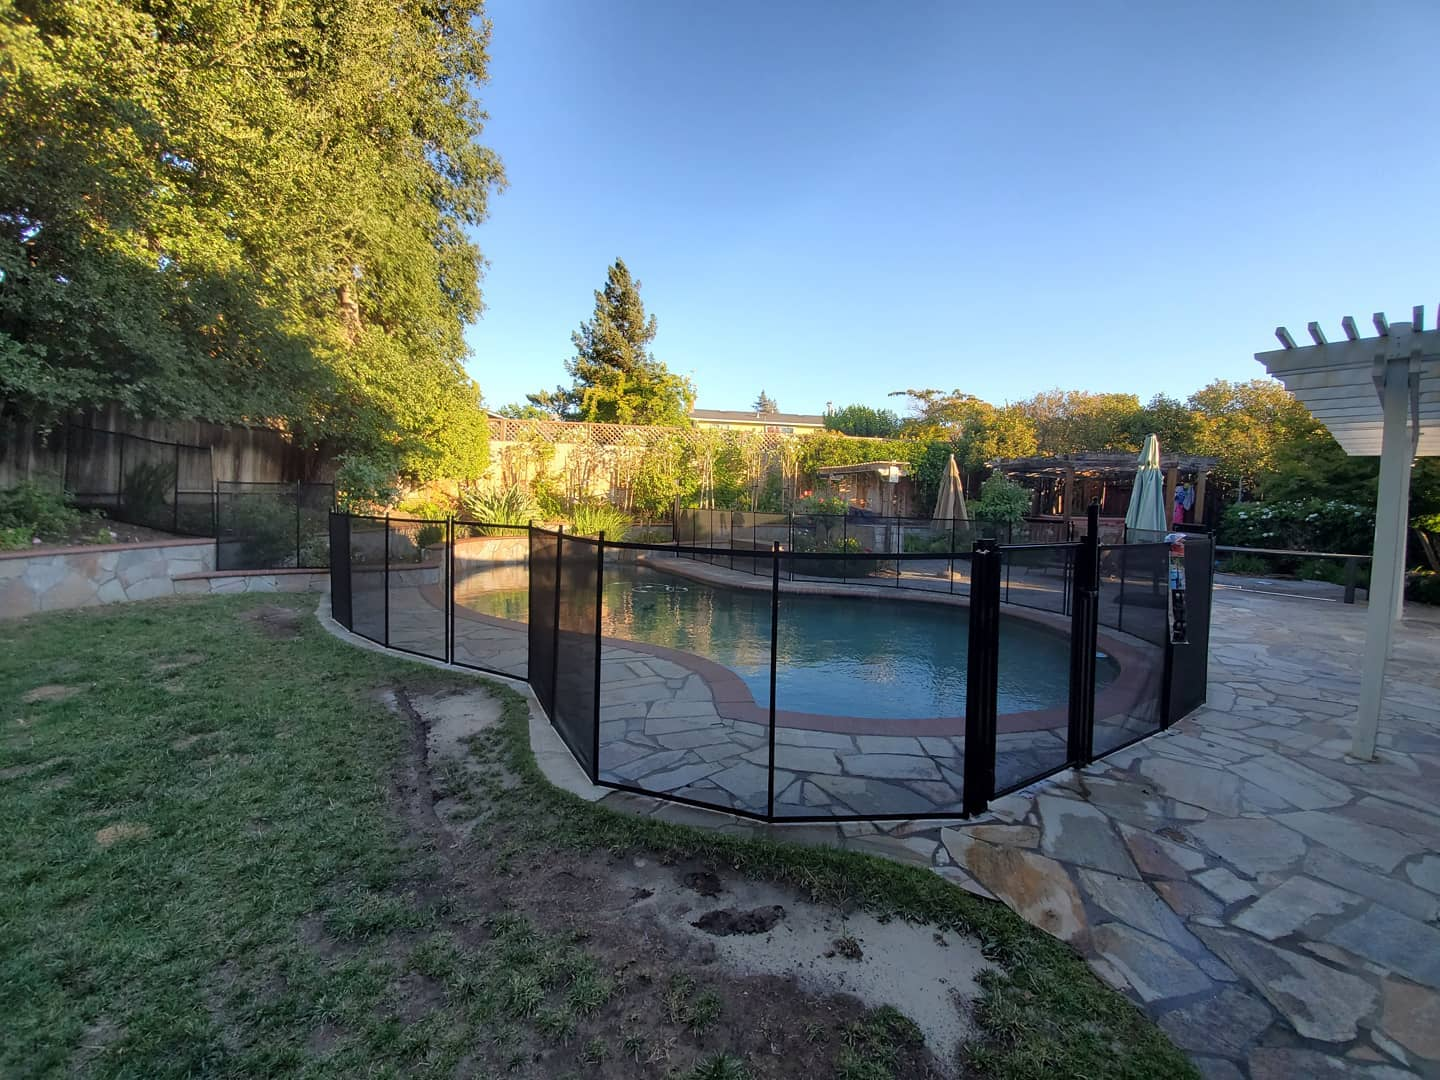 removable child safety mesh pool fence Walnut Creek